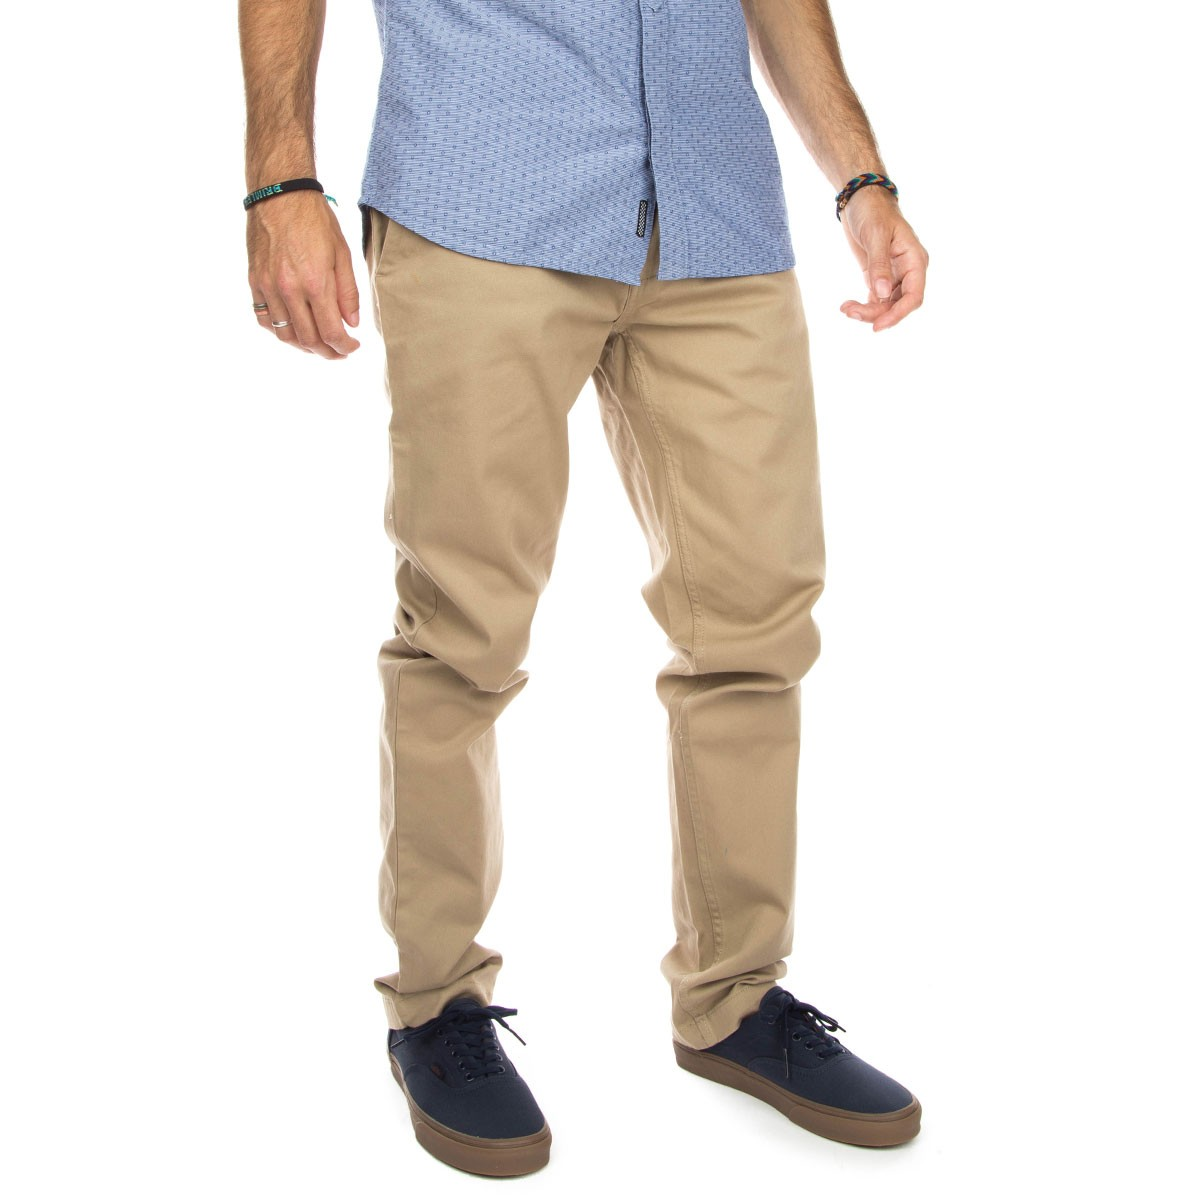 Best Khaki Work Pants